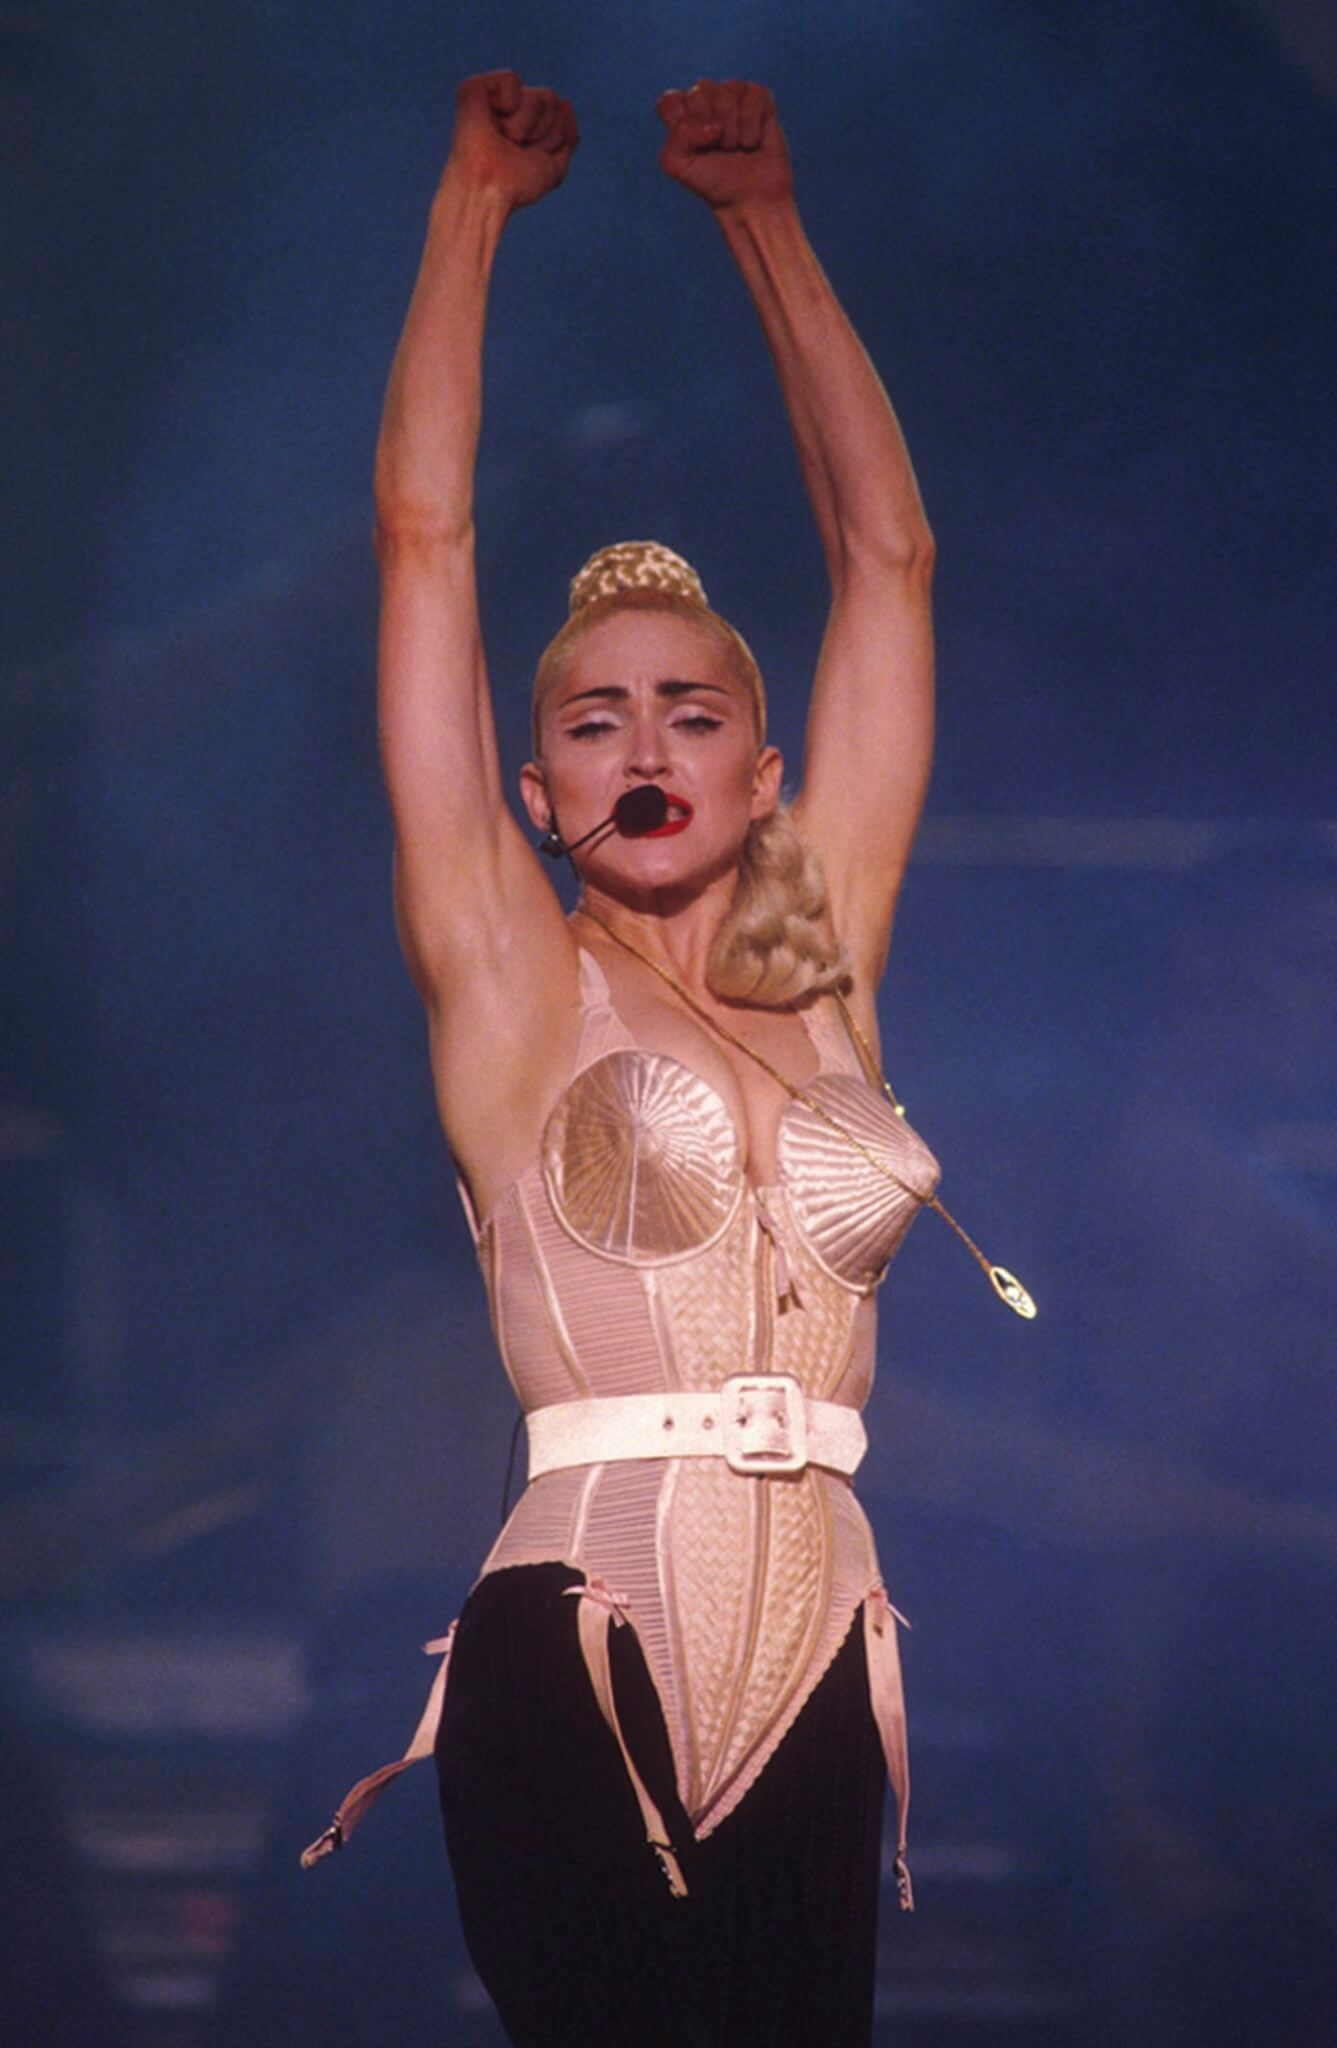 Madonna en su Blonde Ambition Tour de 1990. Fotografía: Archive/Getty